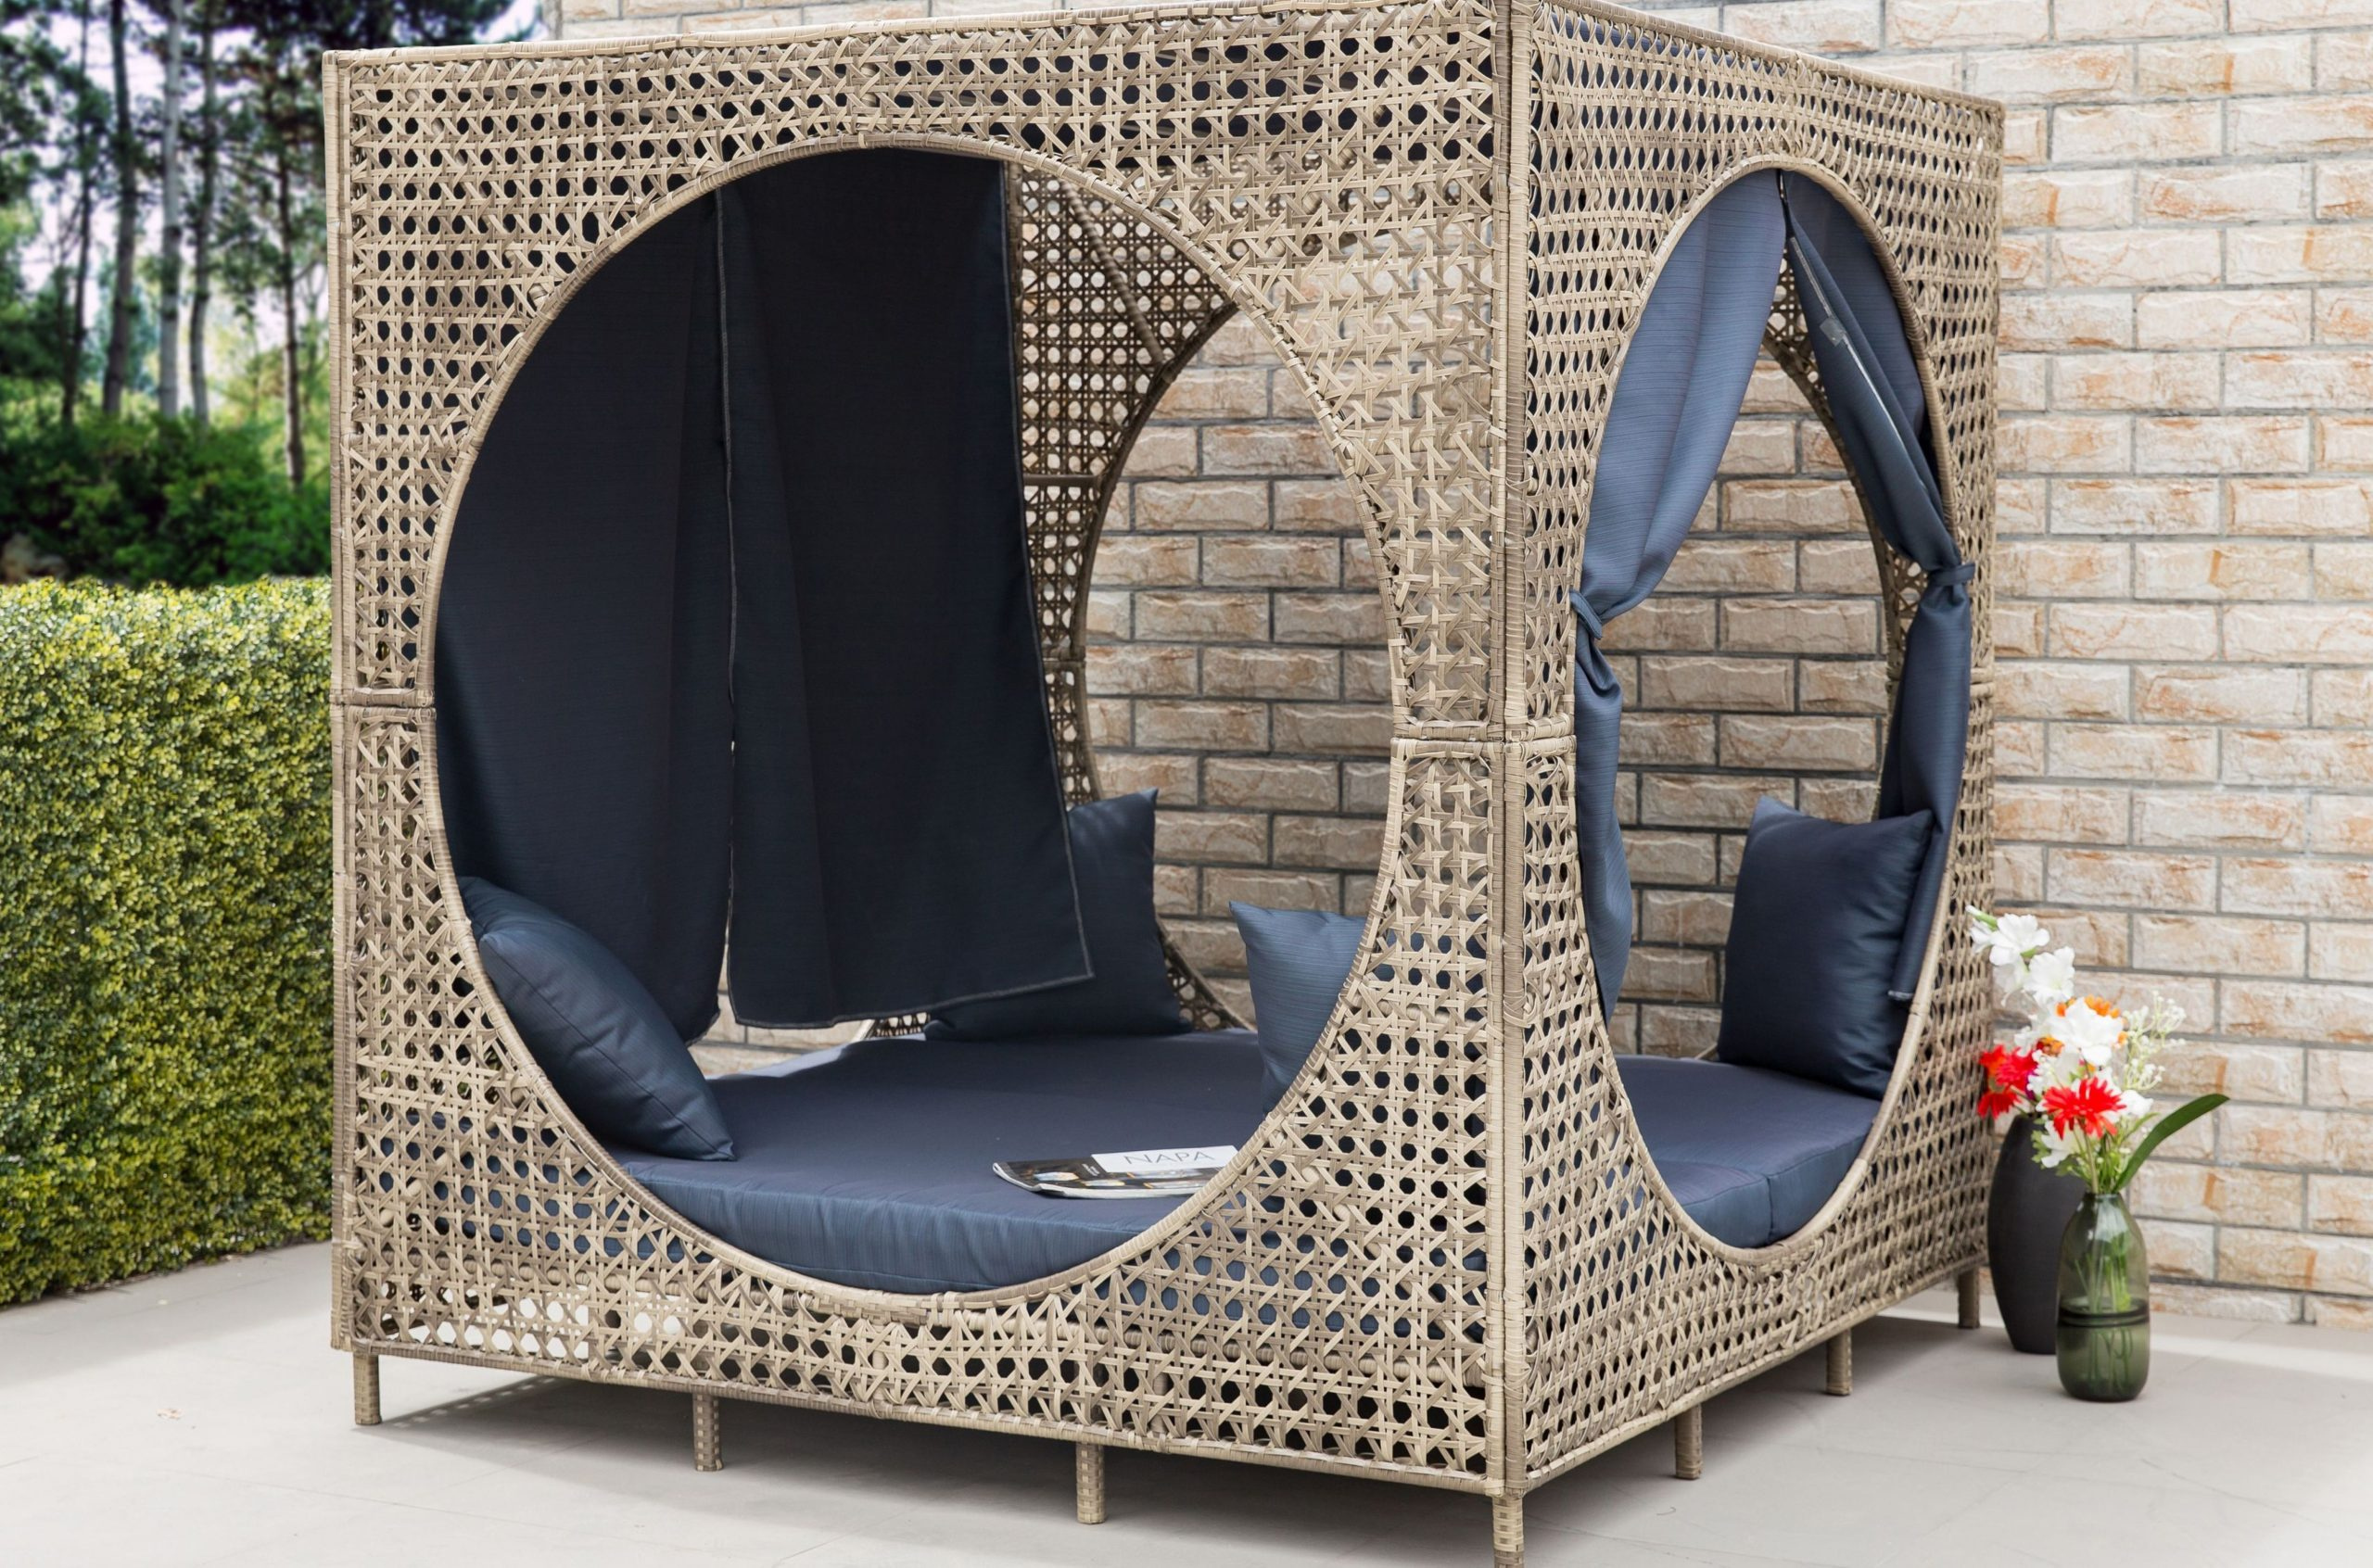 Brennon Cube Patio Daybeds With Kuddar